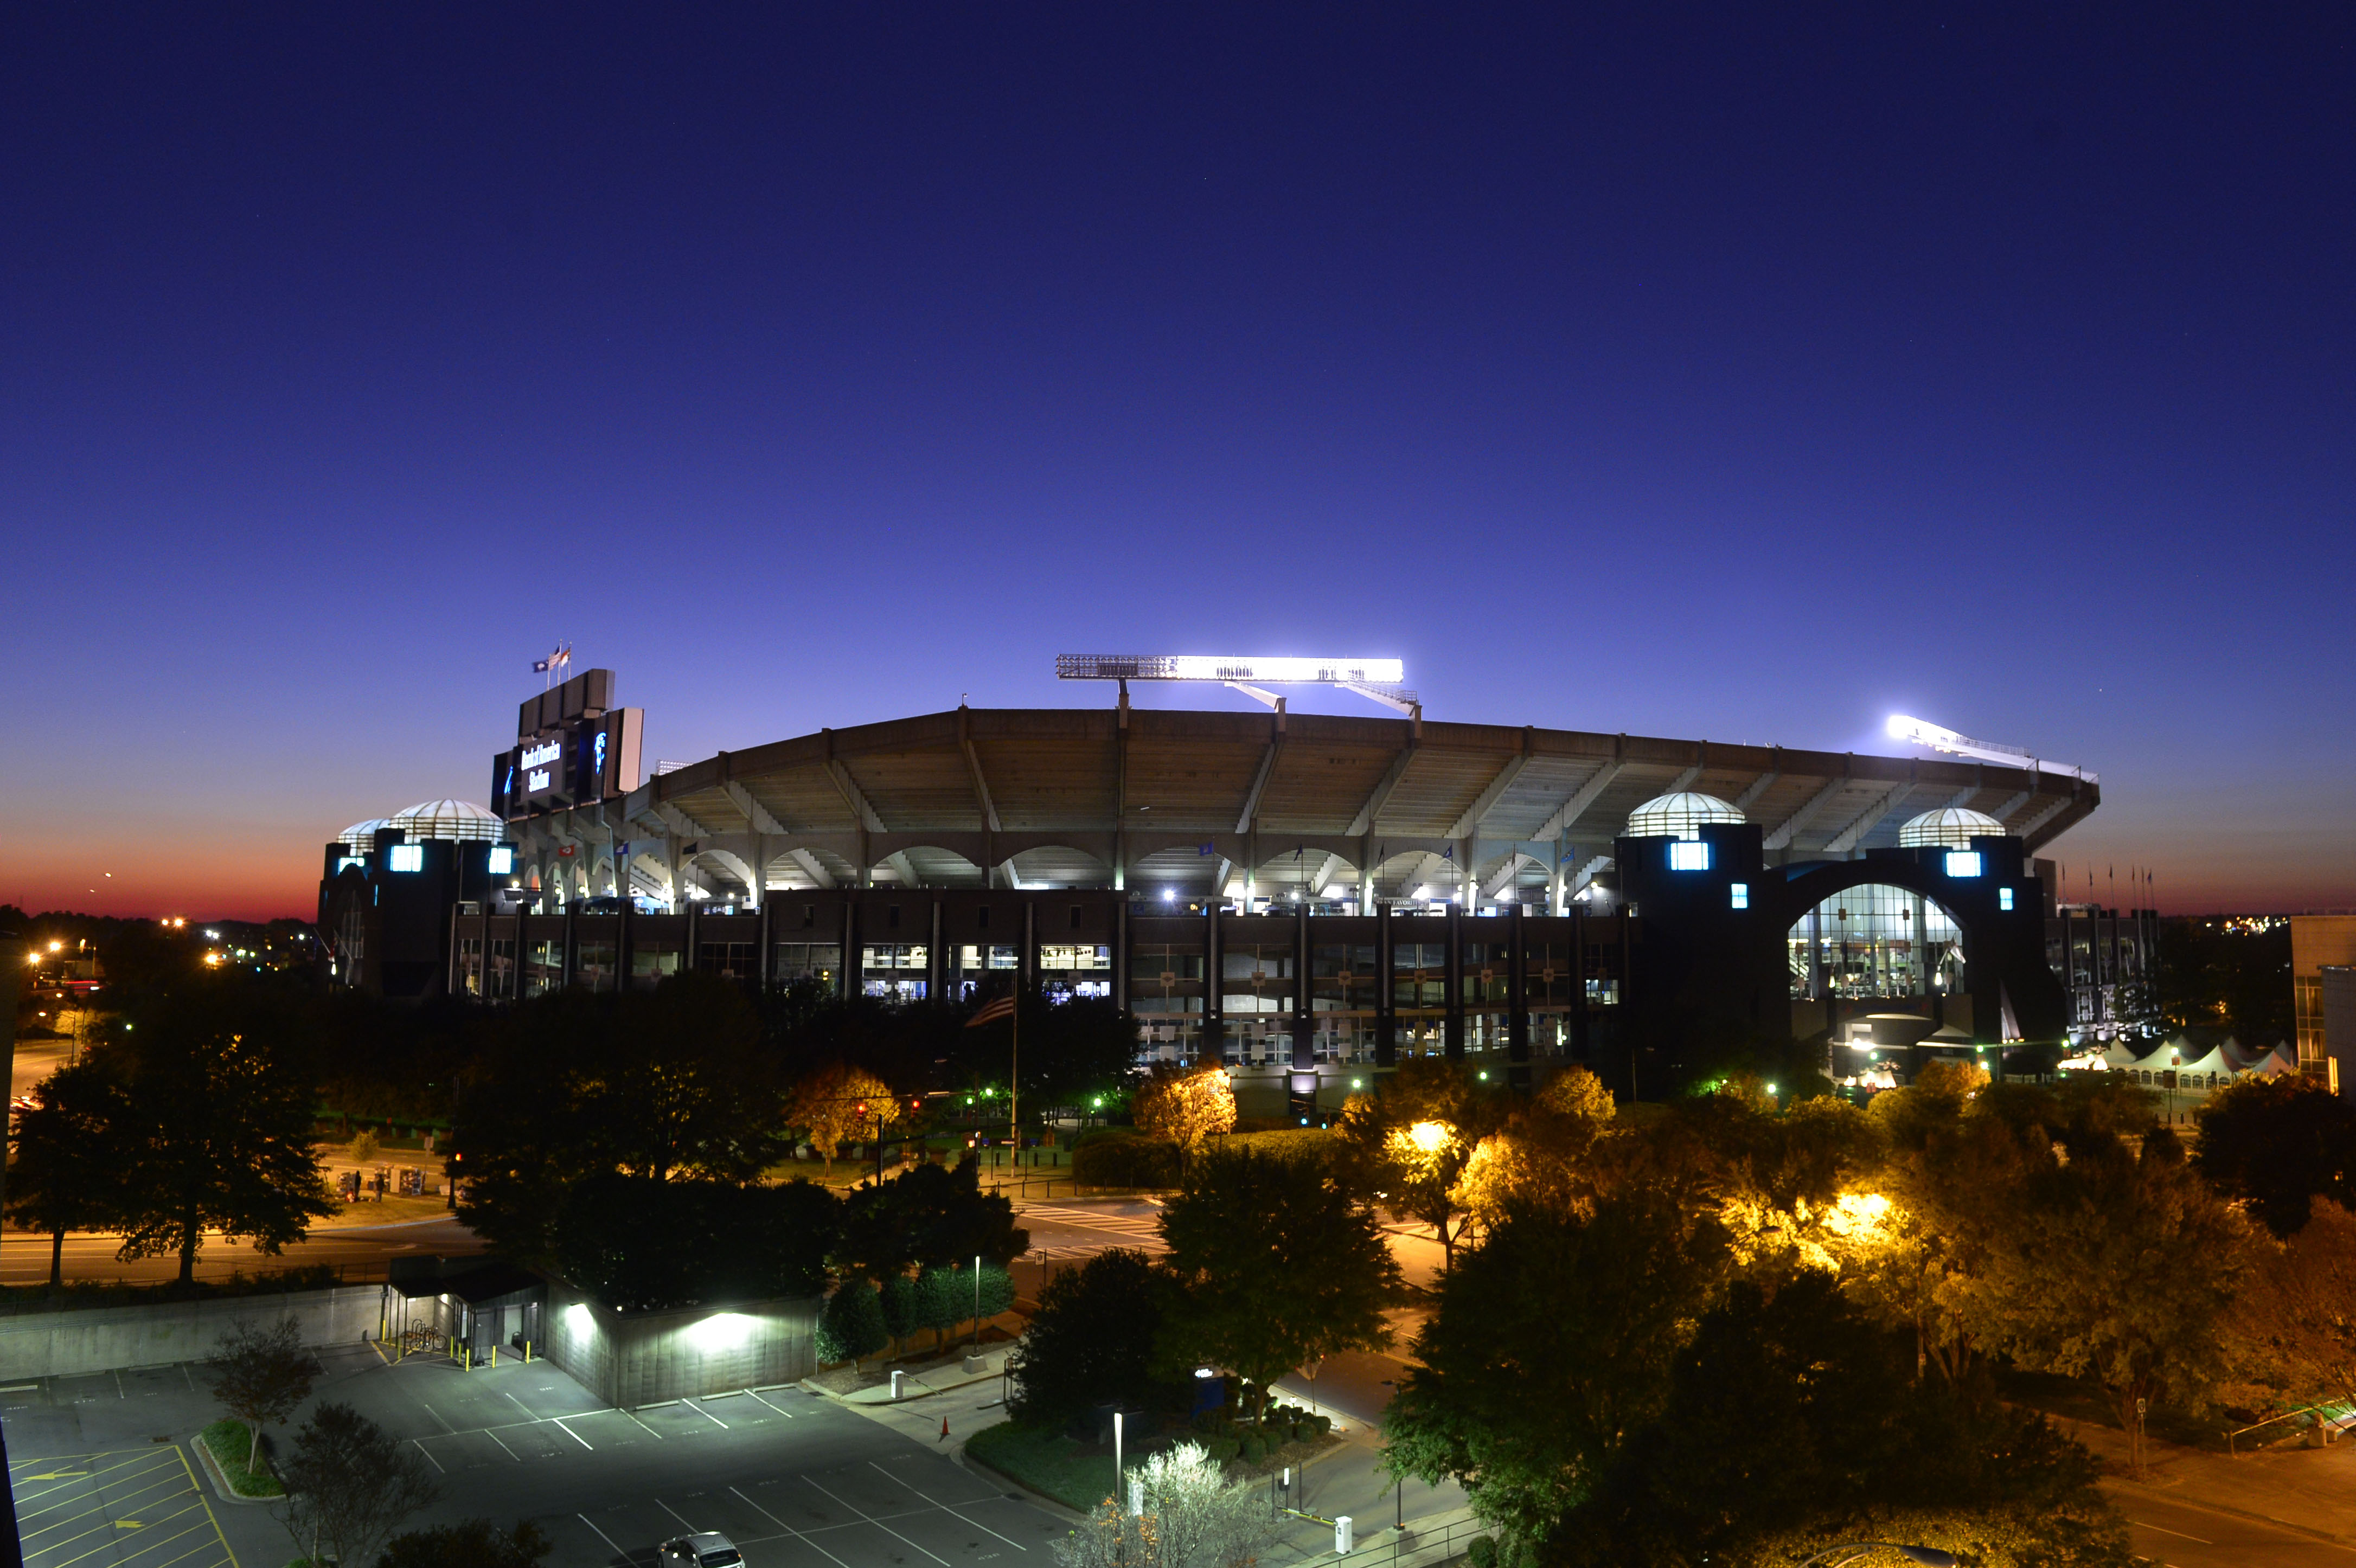 Bank of America Stadium, where gimpy young Equus ferus caballus are fed to large Panthera pardus.